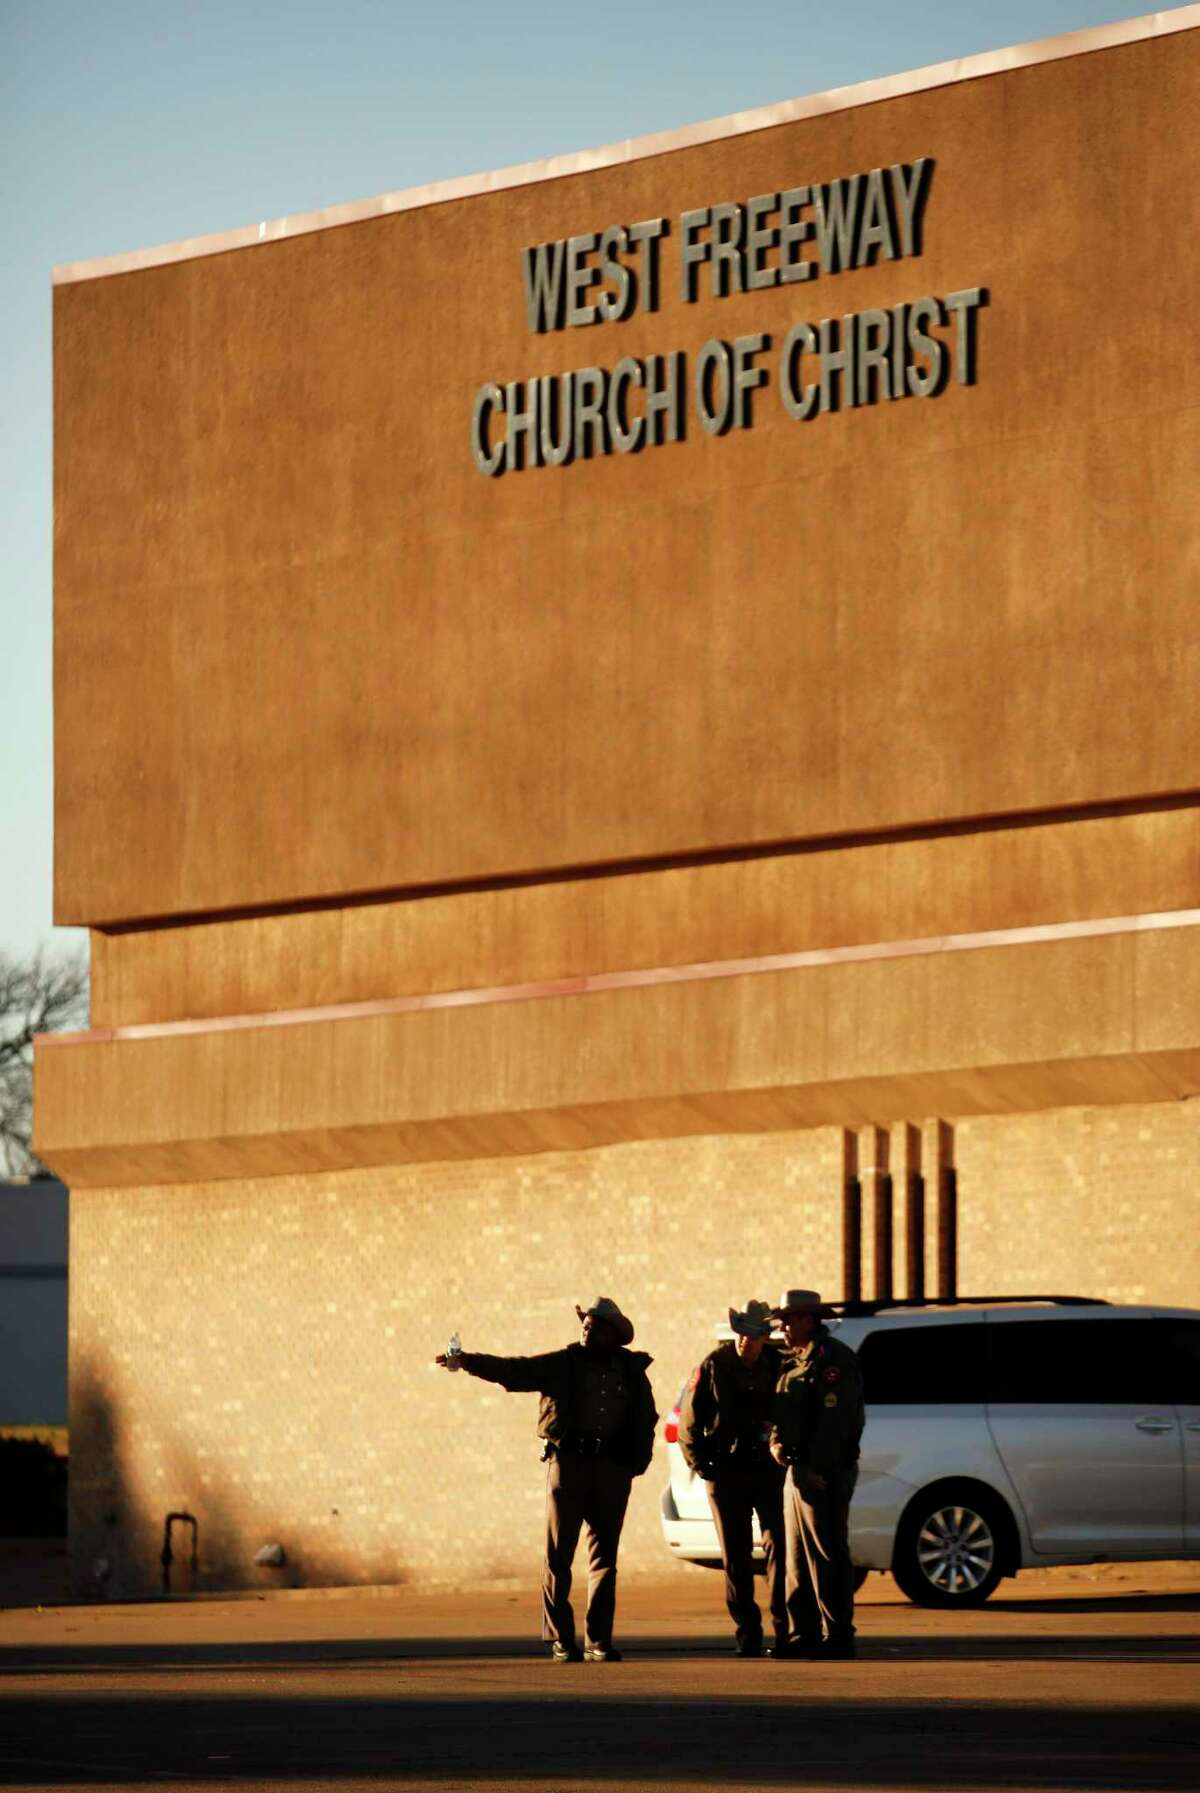 Texas Department of Public Safety troopers secure the parking lot before church and community members gather outside the West Freeway Church of Christ for a candlelight vigil, Monday, Dec. 30, 2019, in White Settlement, Texas. A gunman shot and killed two people before an armed security officer returned fire, killing him during a service at the church on Sunday.